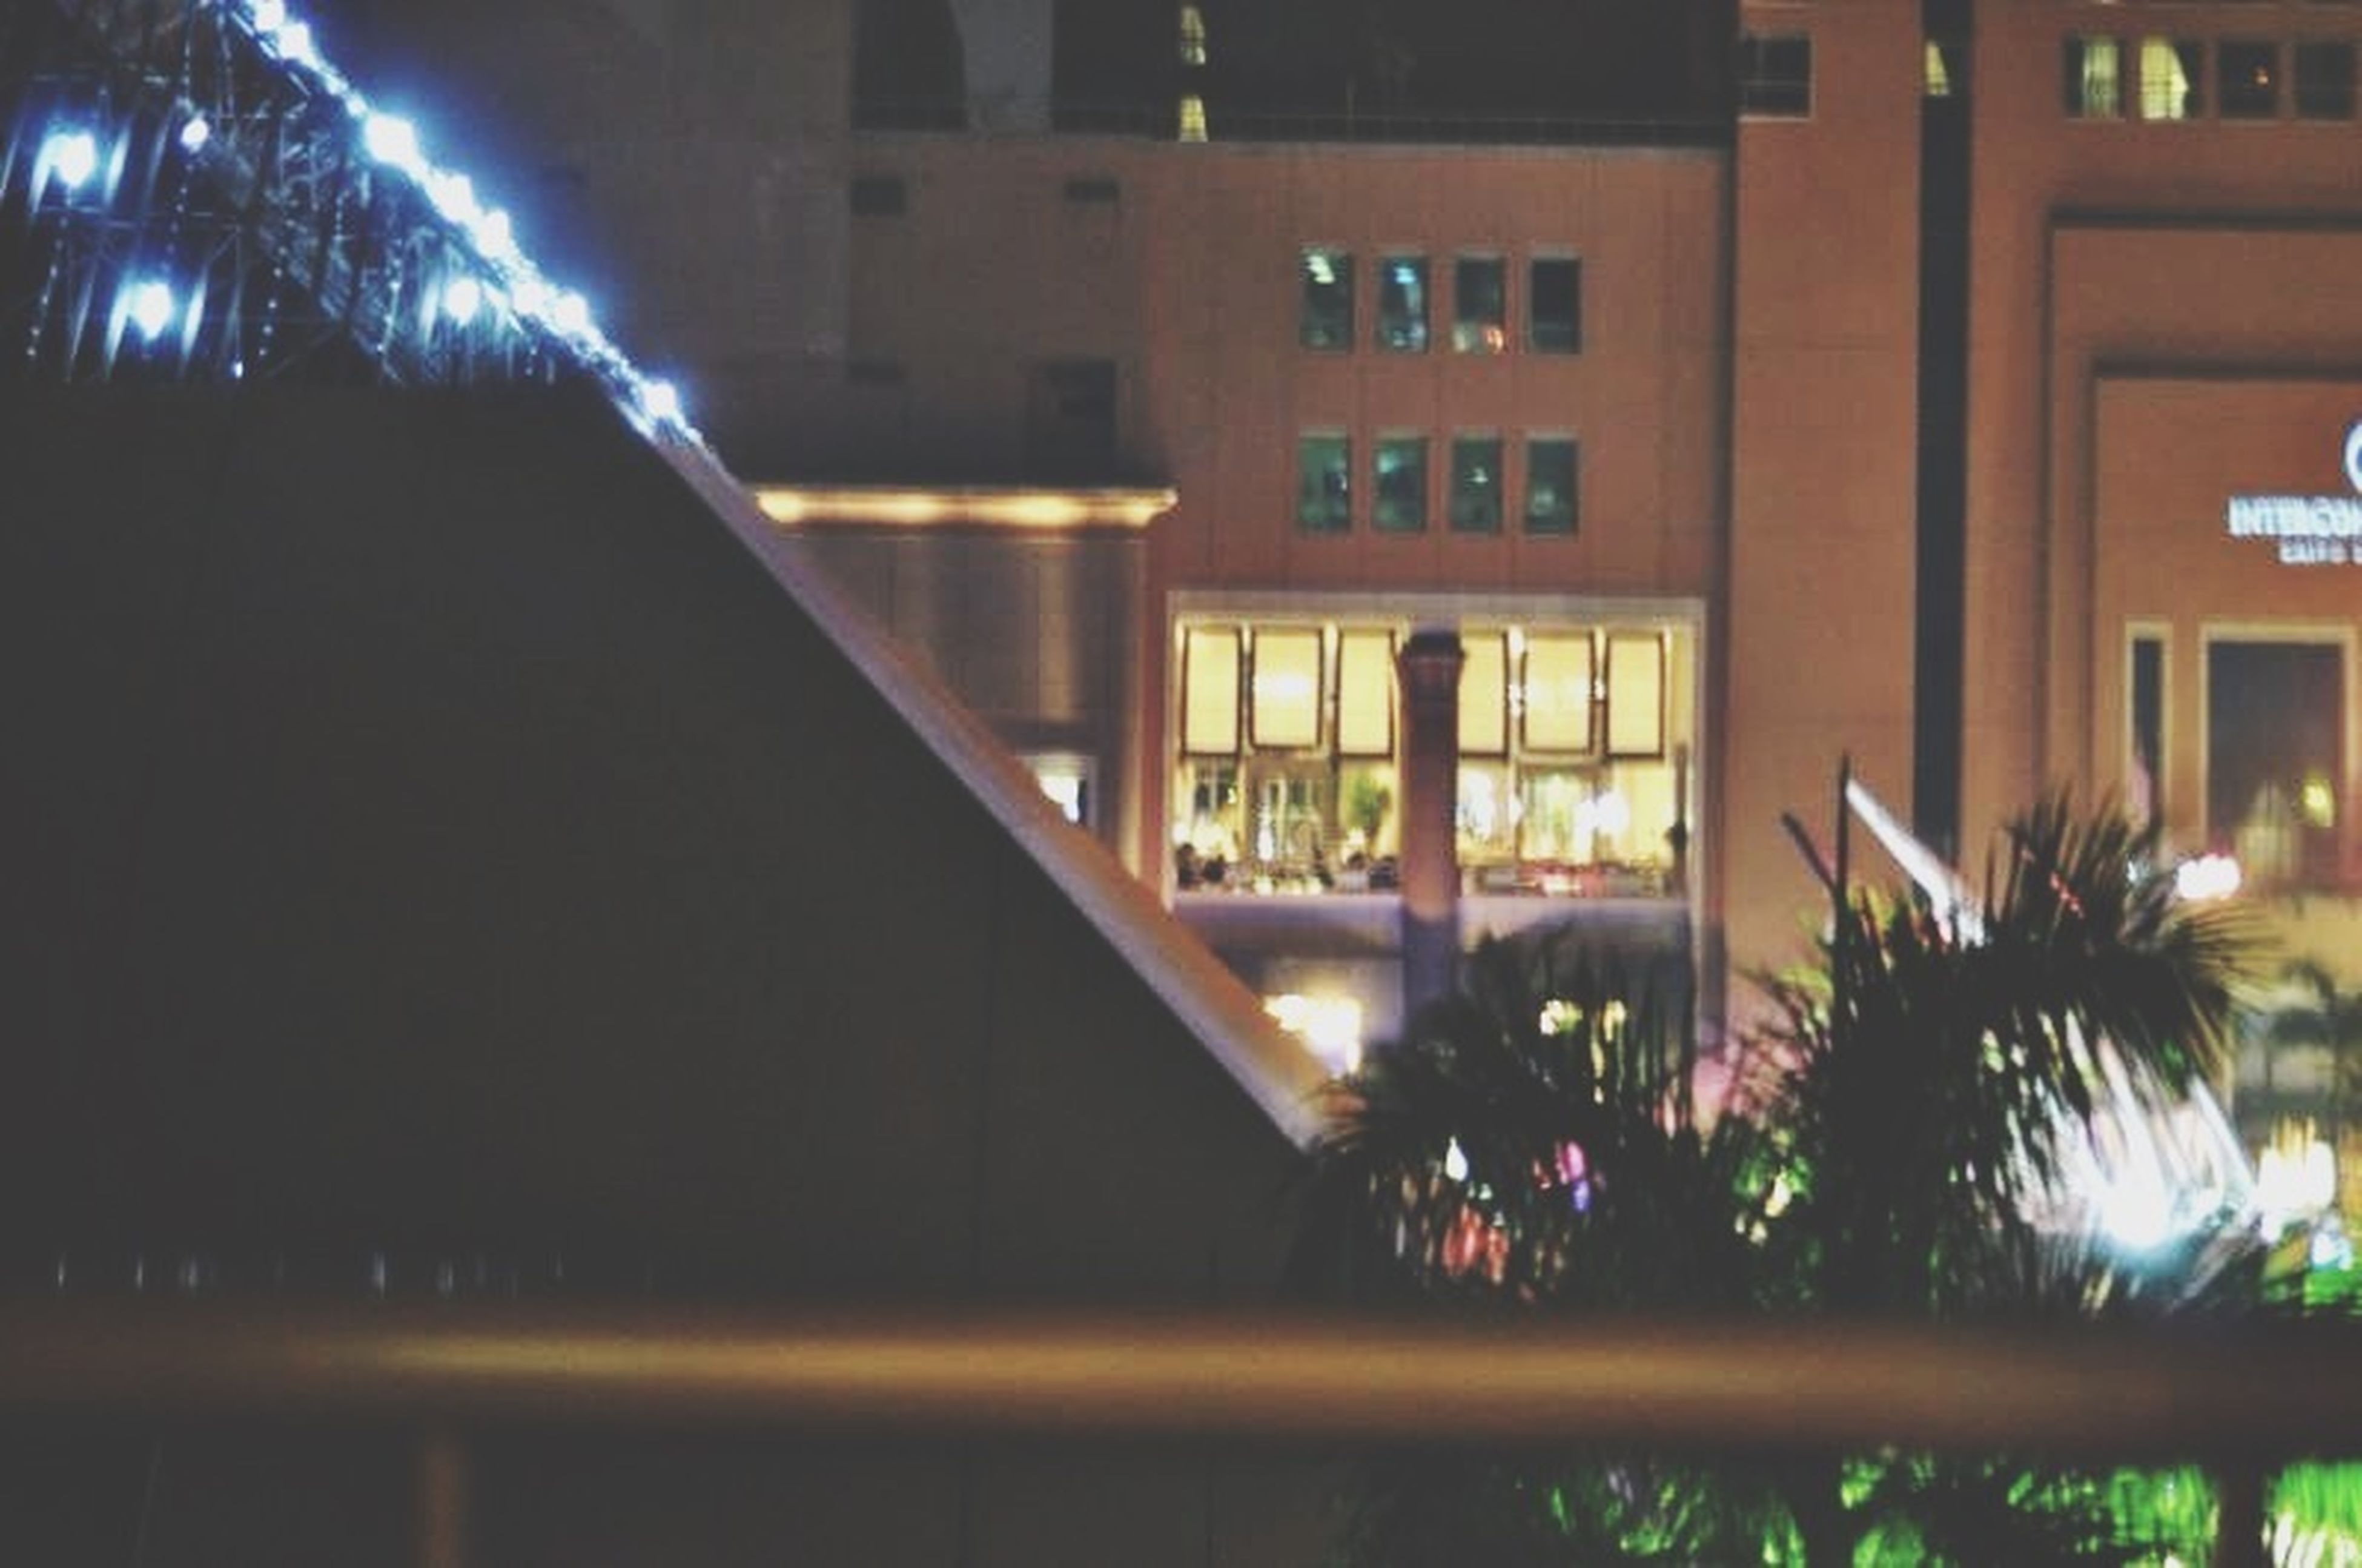 architecture, illuminated, built structure, building exterior, night, house, tree, residential building, residential structure, city, building, lighting equipment, reflection, no people, outdoors, balcony, window, growth, railing, potted plant